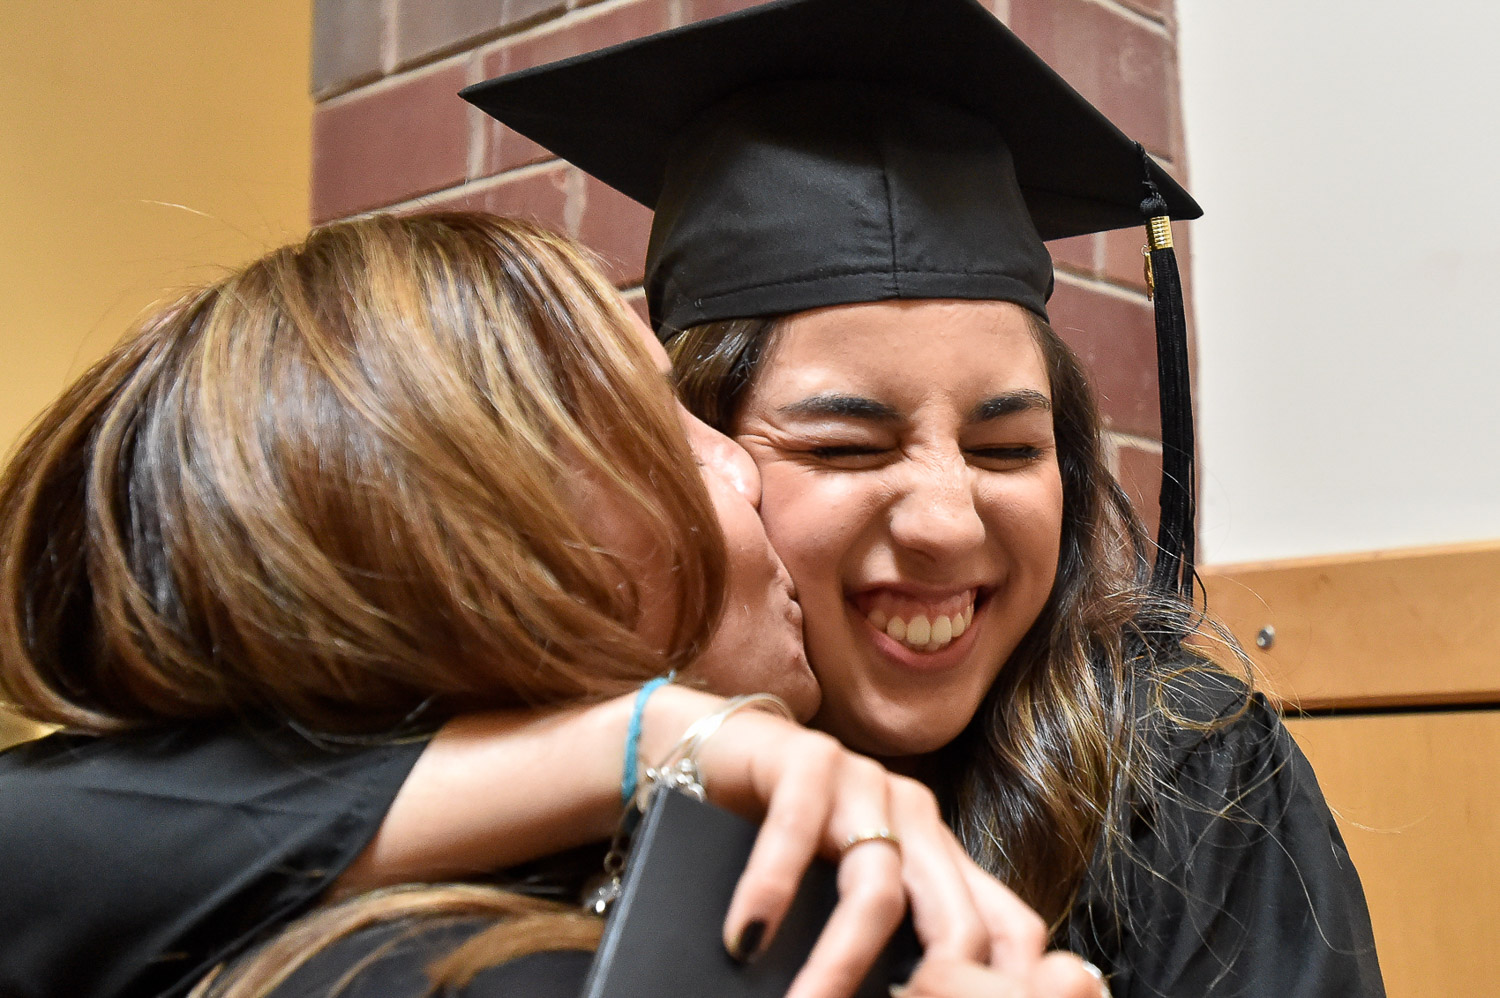 Nikon D4s, 1/320 @ f/4.0, ISO 8,000, 17-35mm  Victoria Brochetto gets a kiss from her mother Patricia at the conclusion of the Ipswich High School Class of 2017 Graduation inside the school gymnasium, Sunday, June 4, 2017. [Wicked Local Staff Photo / David Sokol]